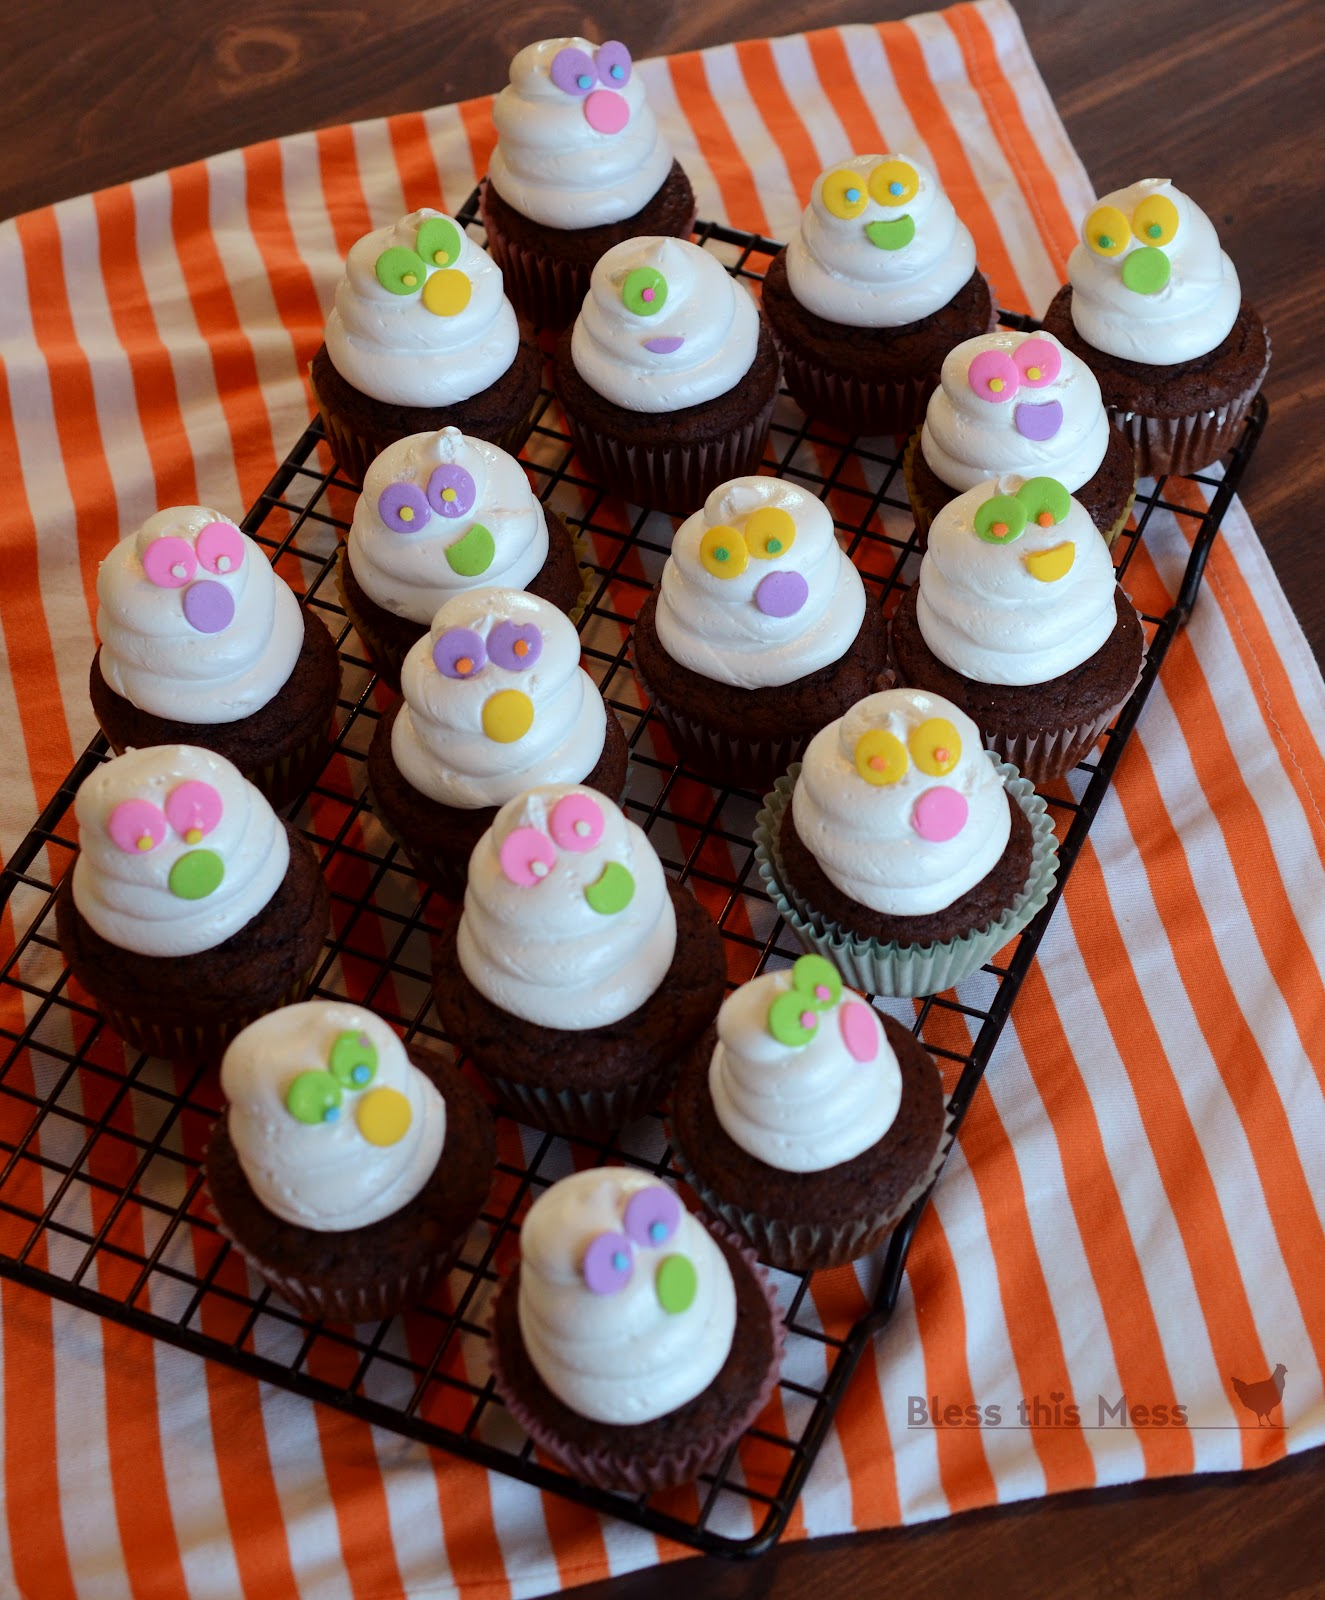 Ghostly Cupcakes - Bless This Mess